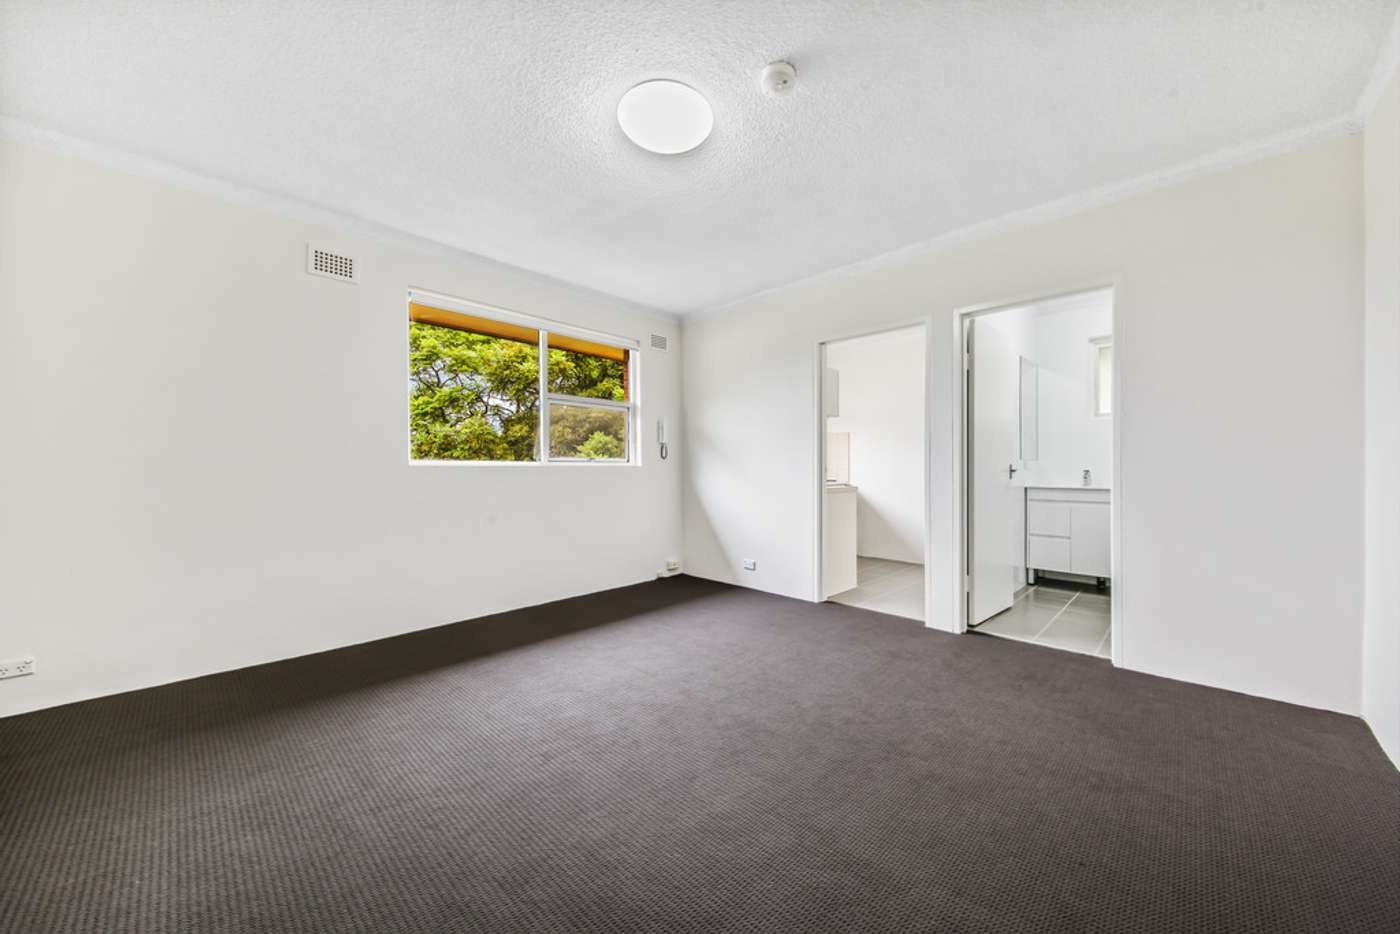 Main view of Homely studio listing, 9/68A Brocks Lane, Newtown NSW 2042